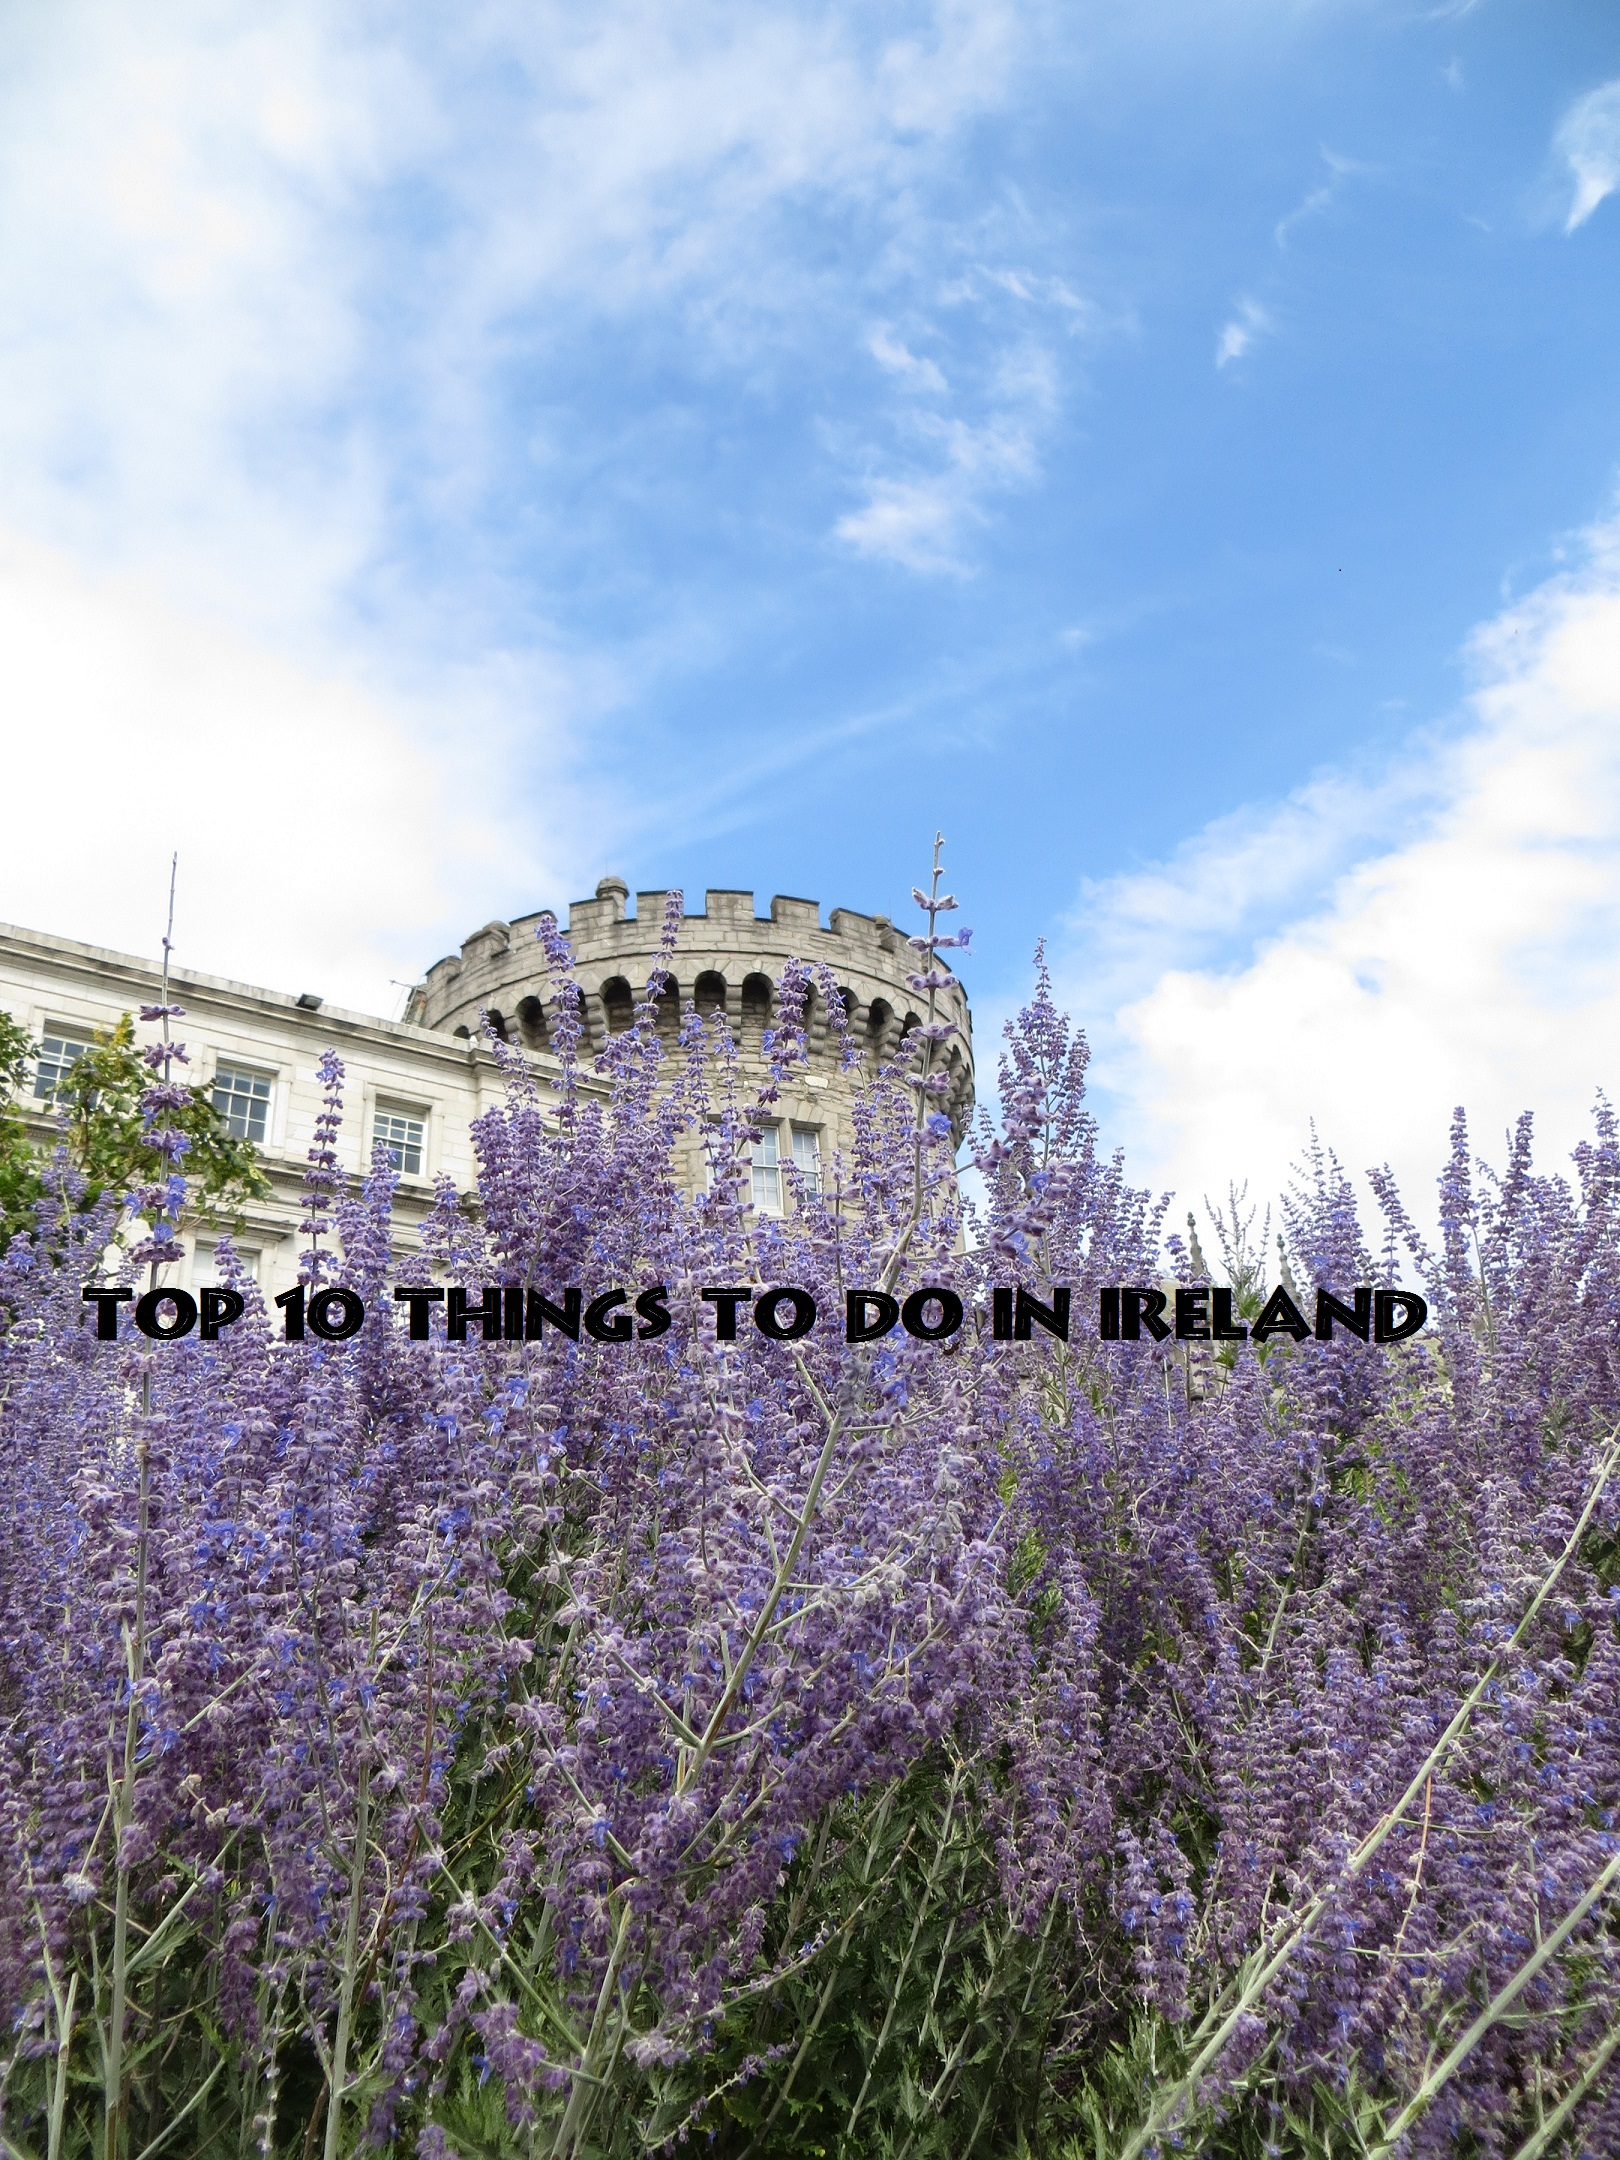 Top 10 things to do in Ireland